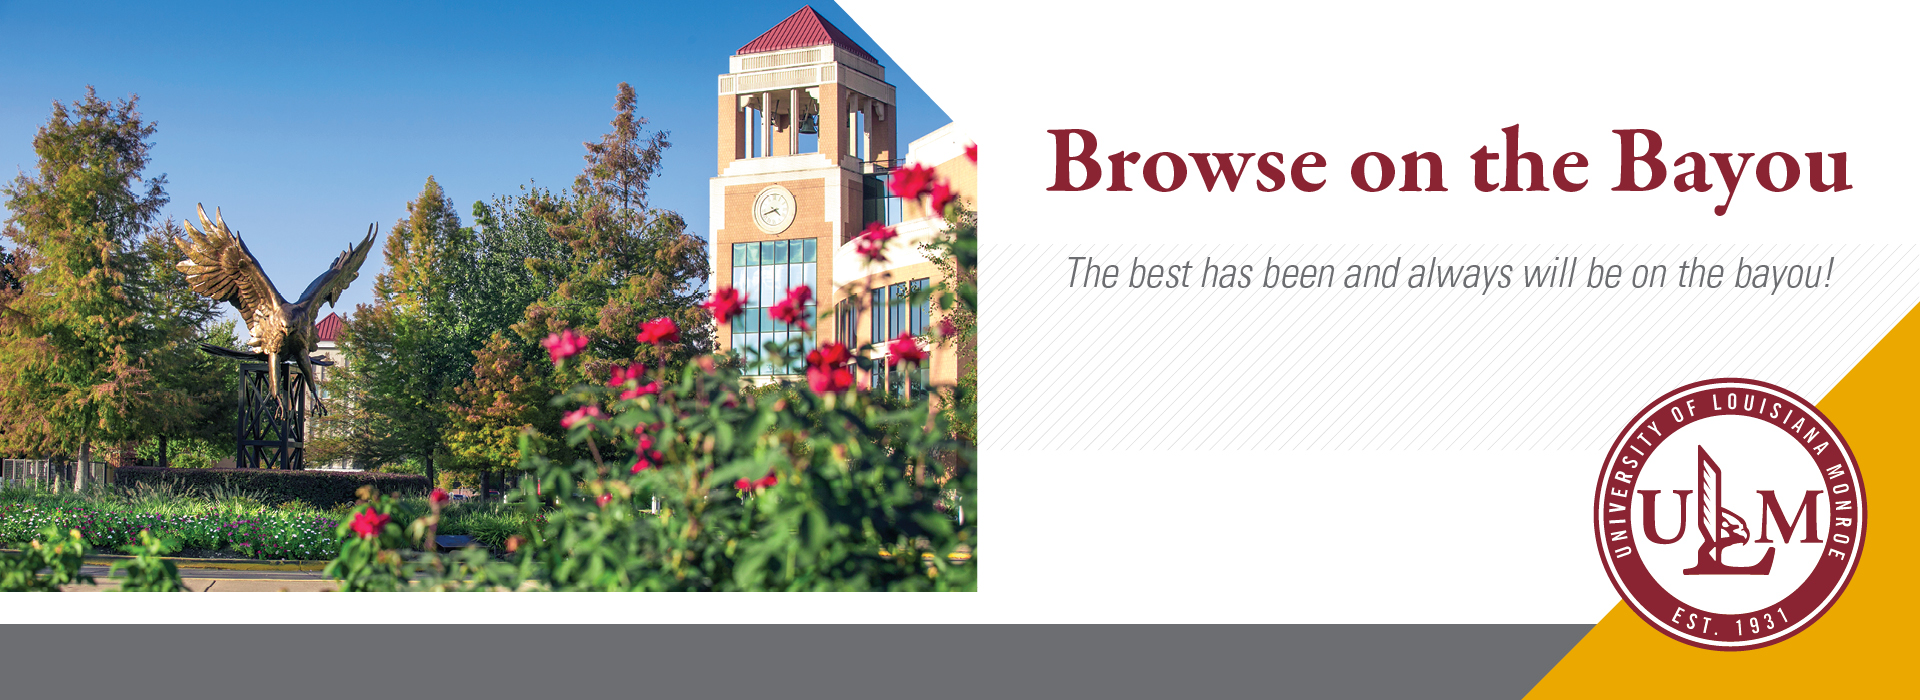 Browse on the Bayou March 30, 2019 banner ad